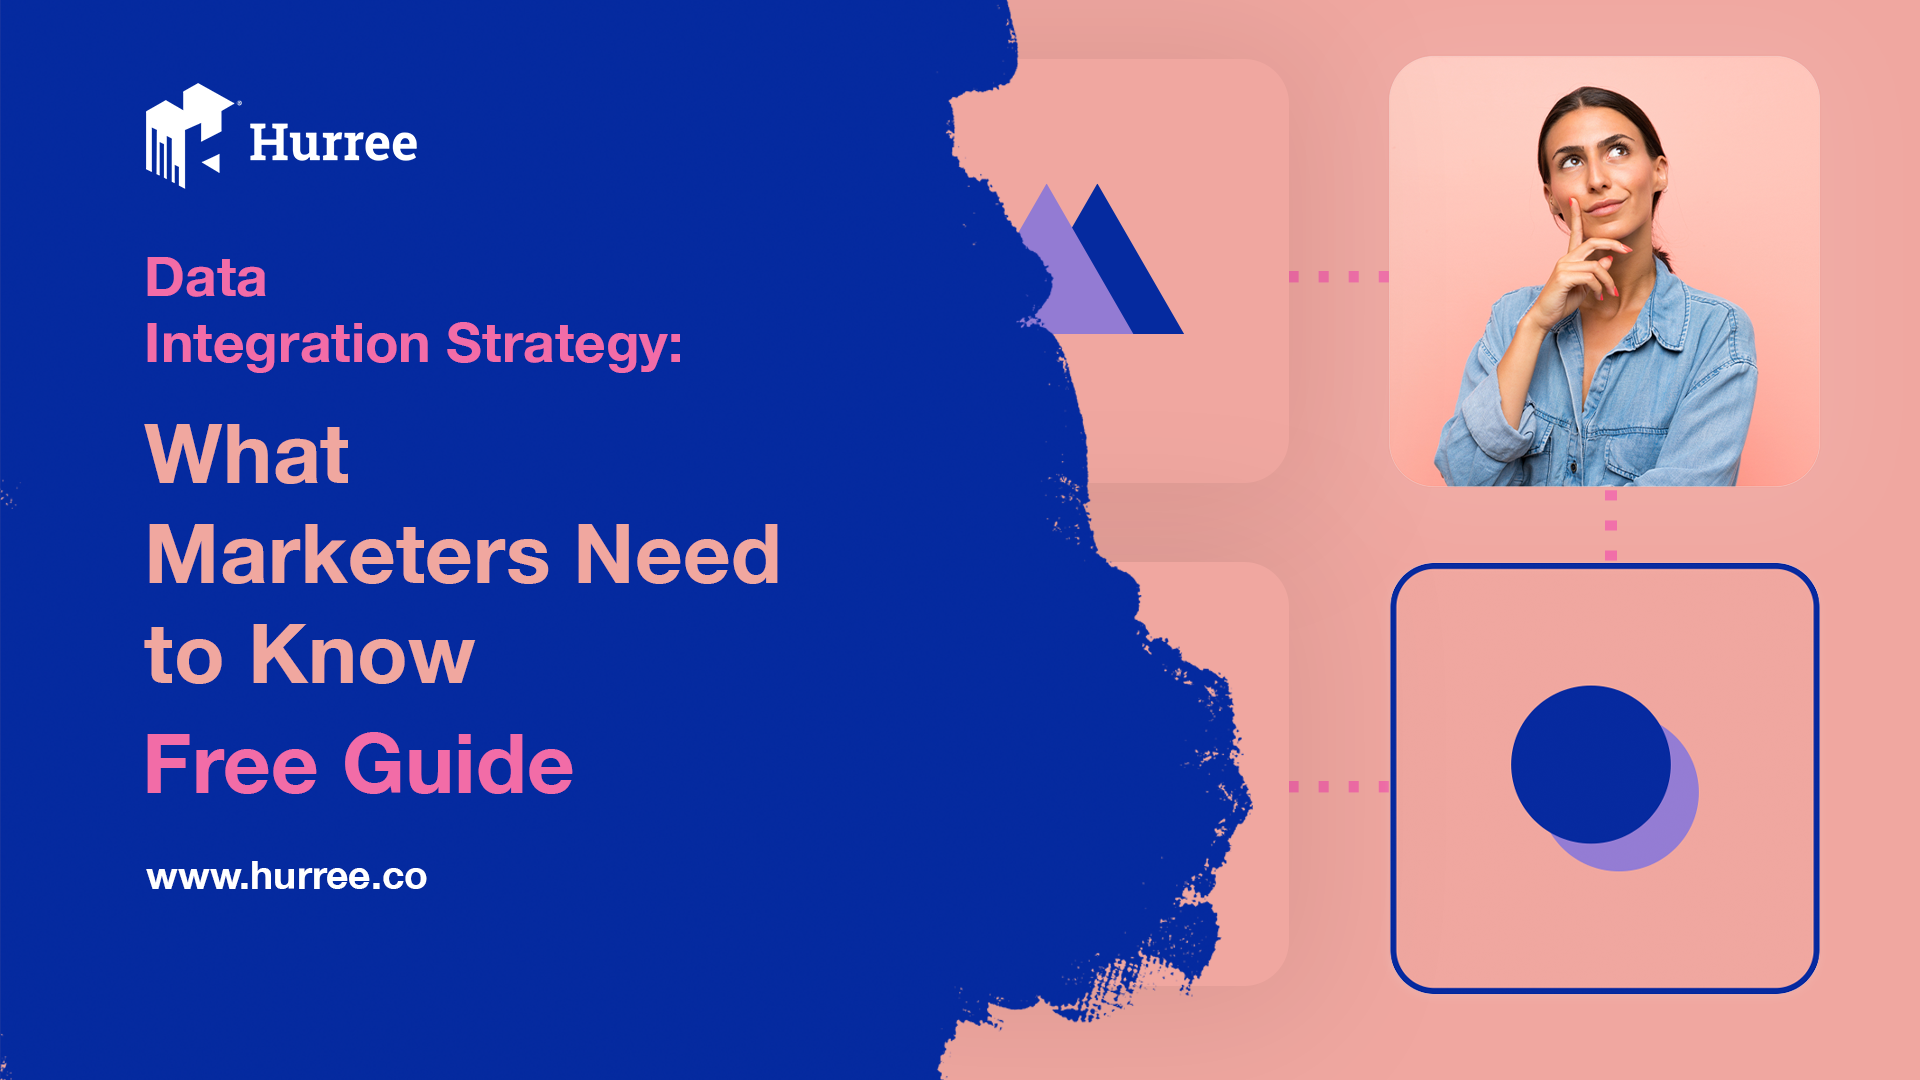 Large_CTA: Data Integration Strategy - What Marketers Need to Know. Free Guide